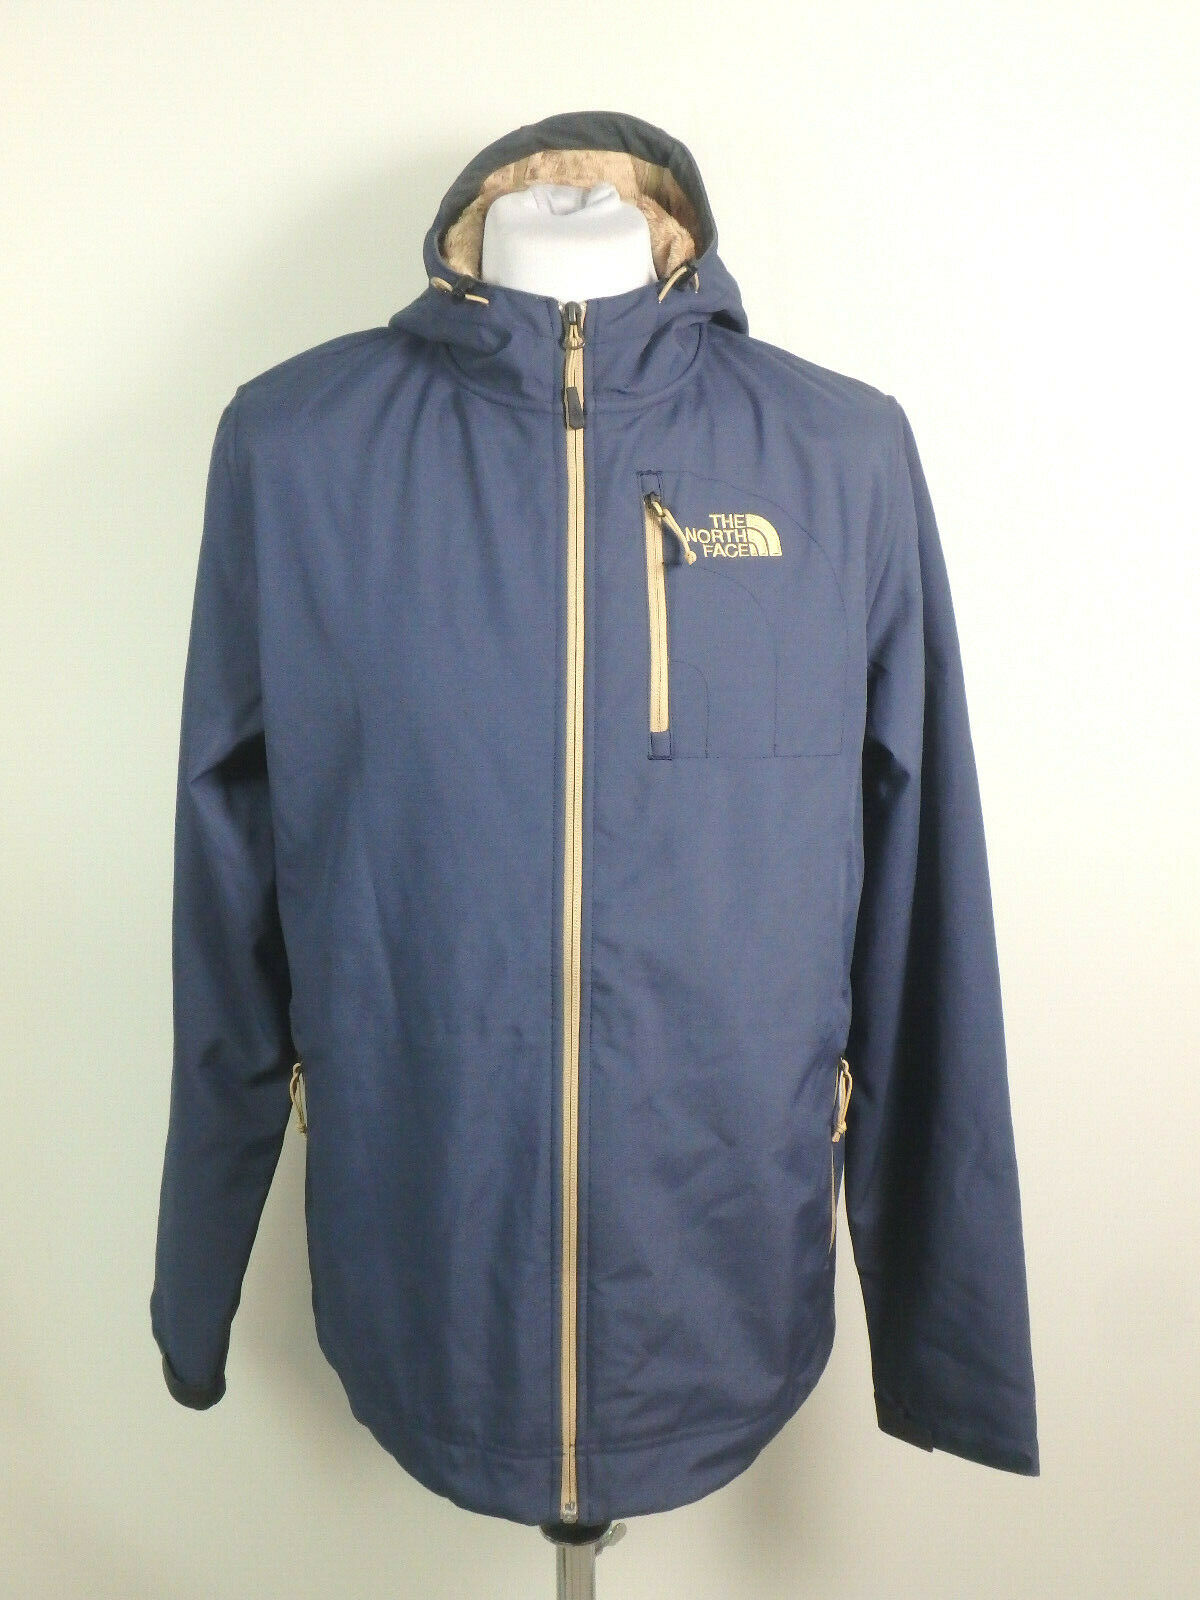 The North Face #31561 Outdoorjacke Jacke Kapuze Outdoor Herren Gr. L Blau